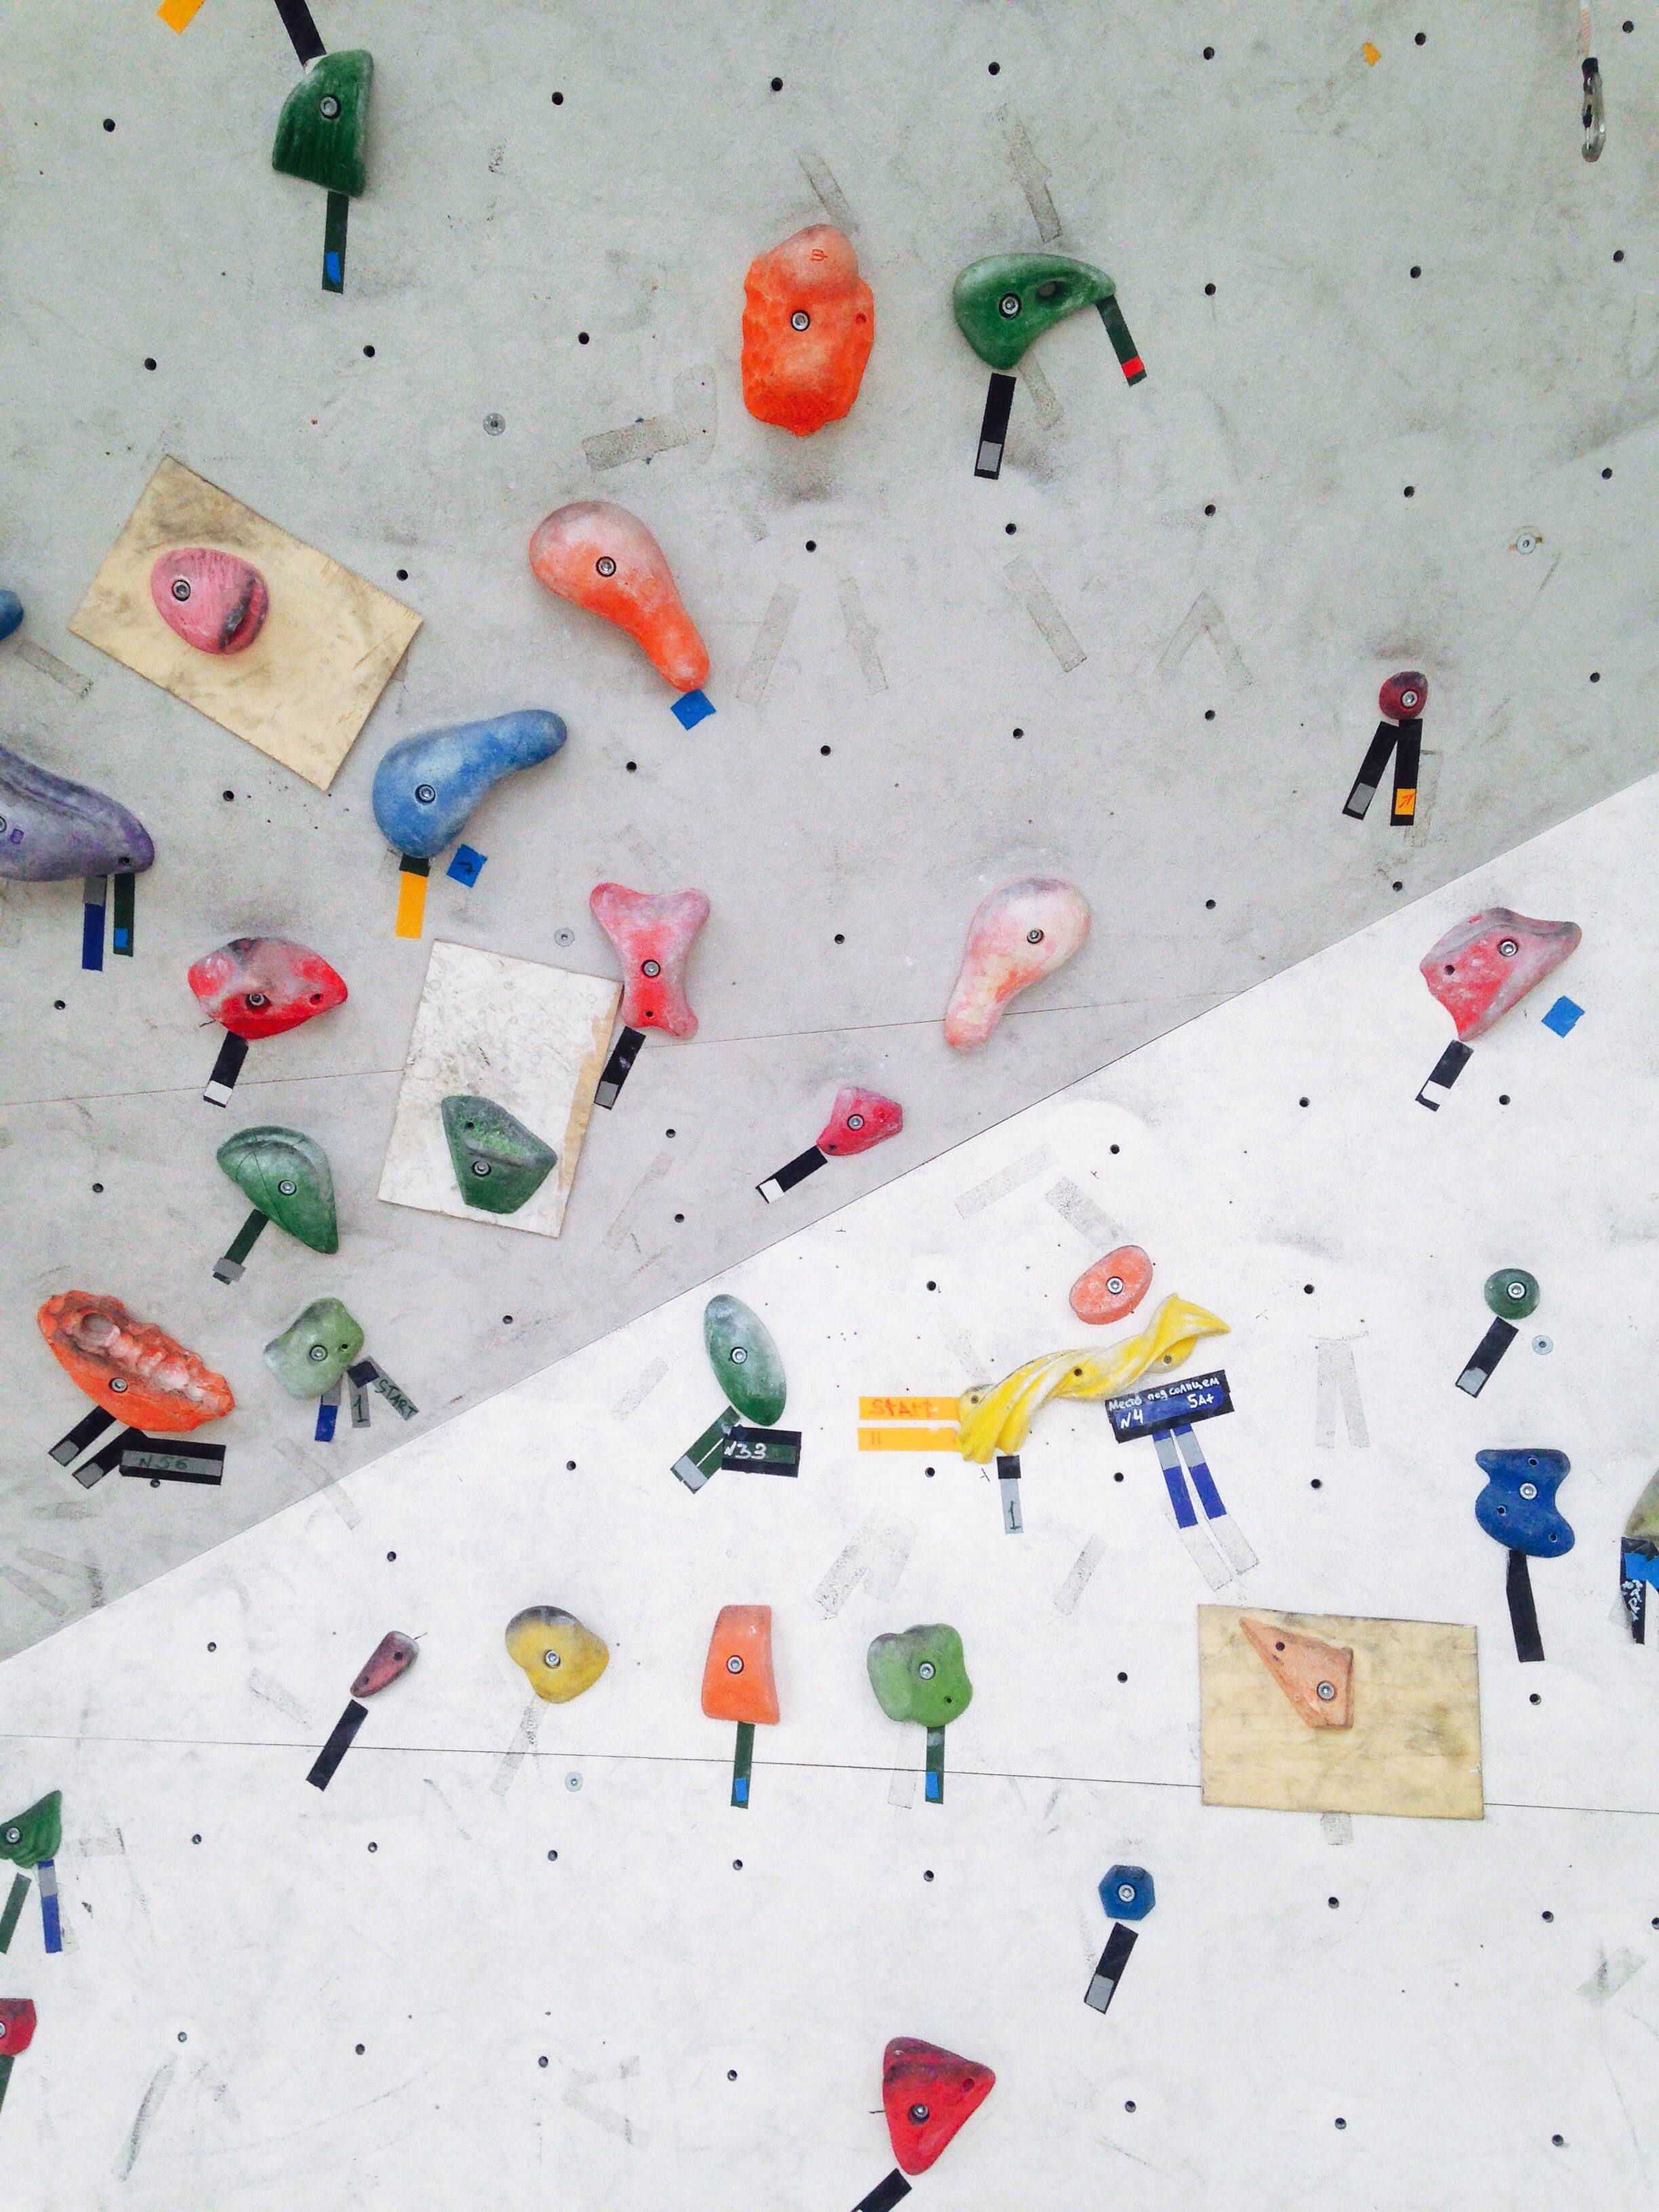 Fundamentals of Climbing: Warming Up - How to warm up properly before climbing activities